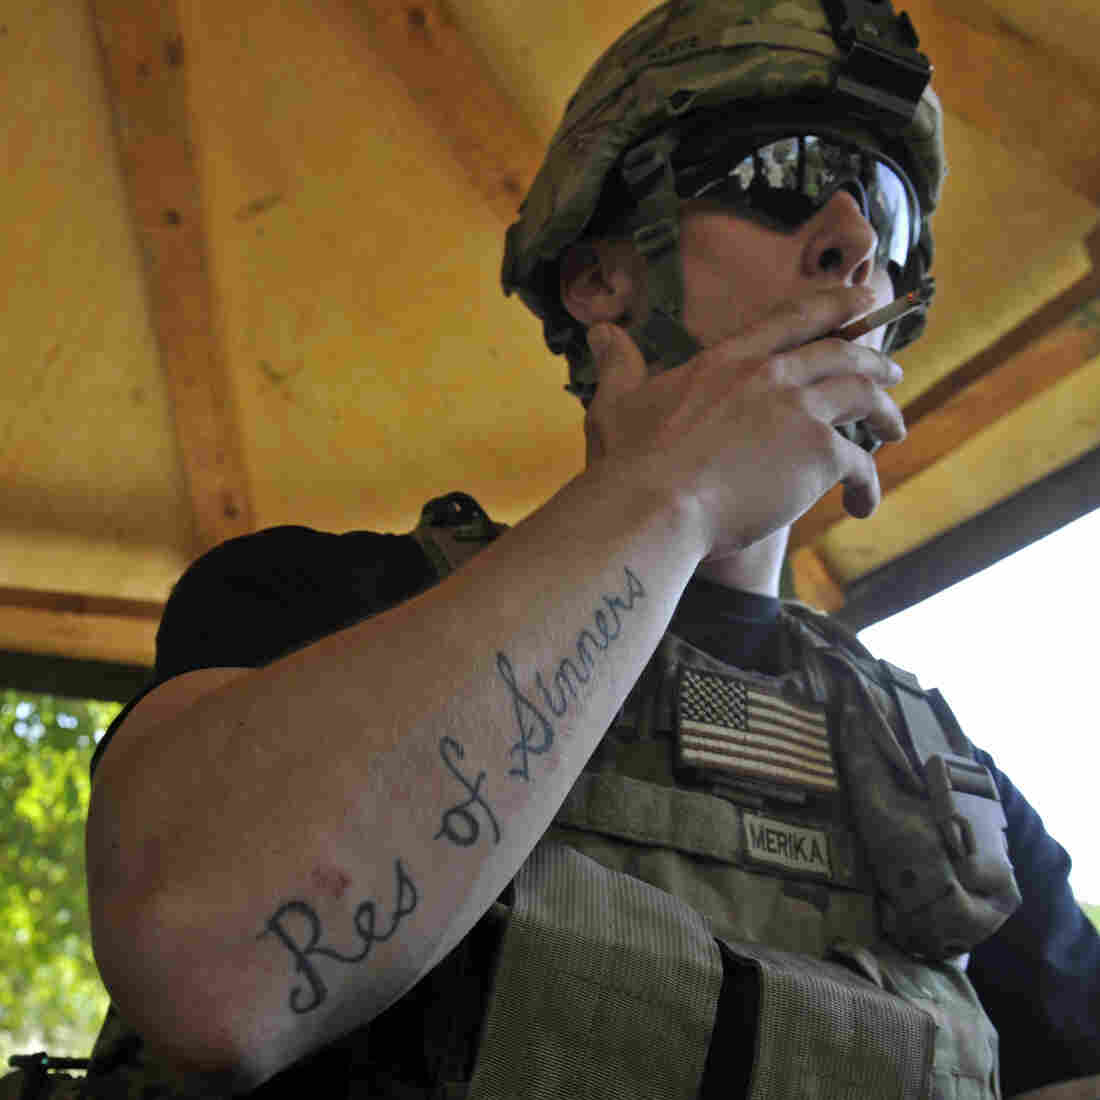 A U.S. Army soldier at Outpost Monti in Afghanistan's Kunar province, in Sept. 2011.